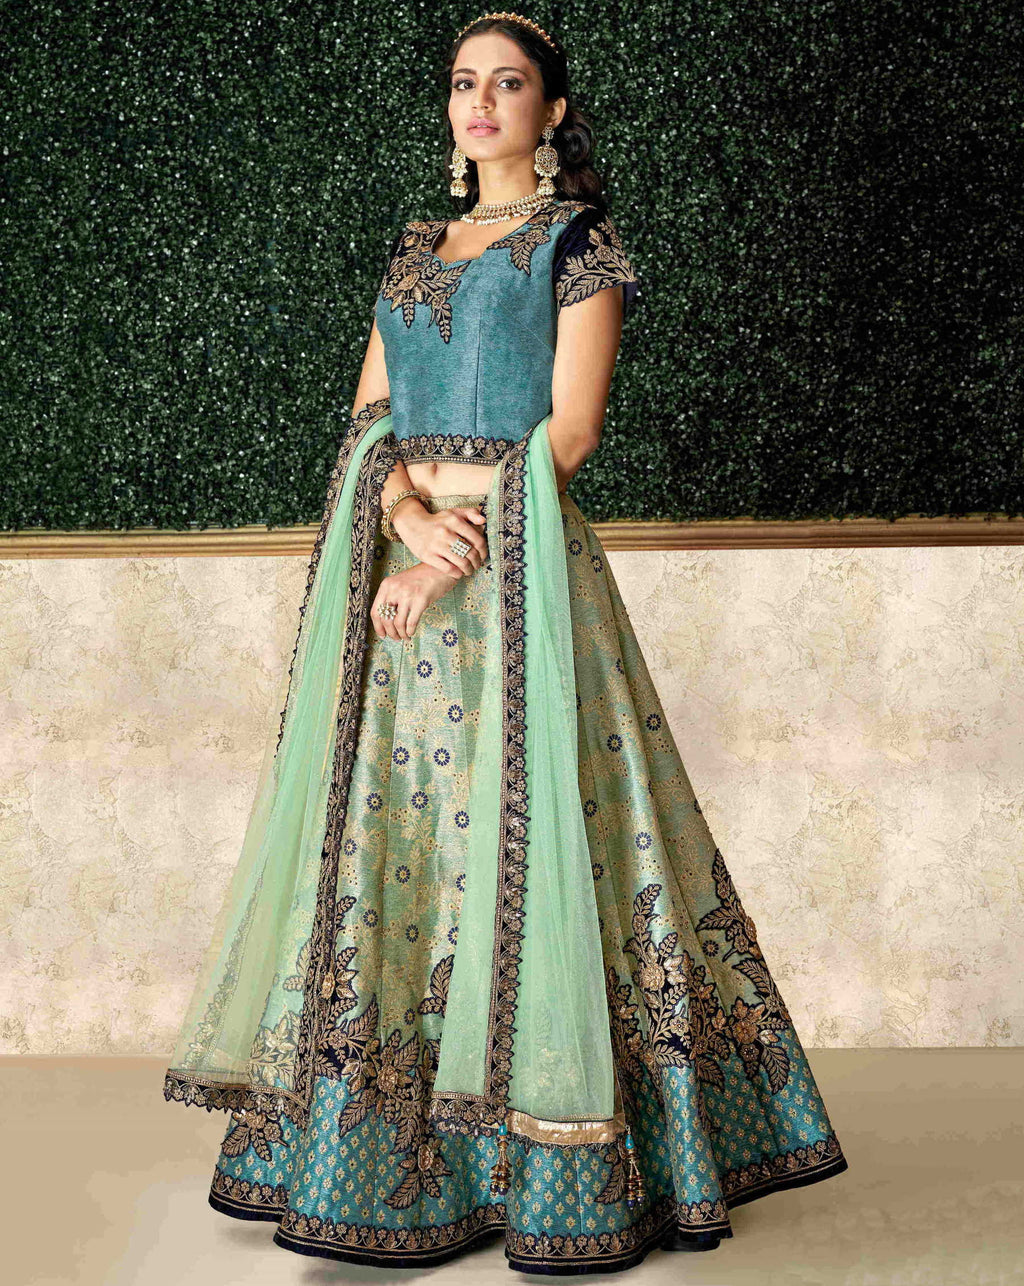 Aqua Green Color Jacquard Silk Pretty Marriage Functions Lehengas NYF-4899